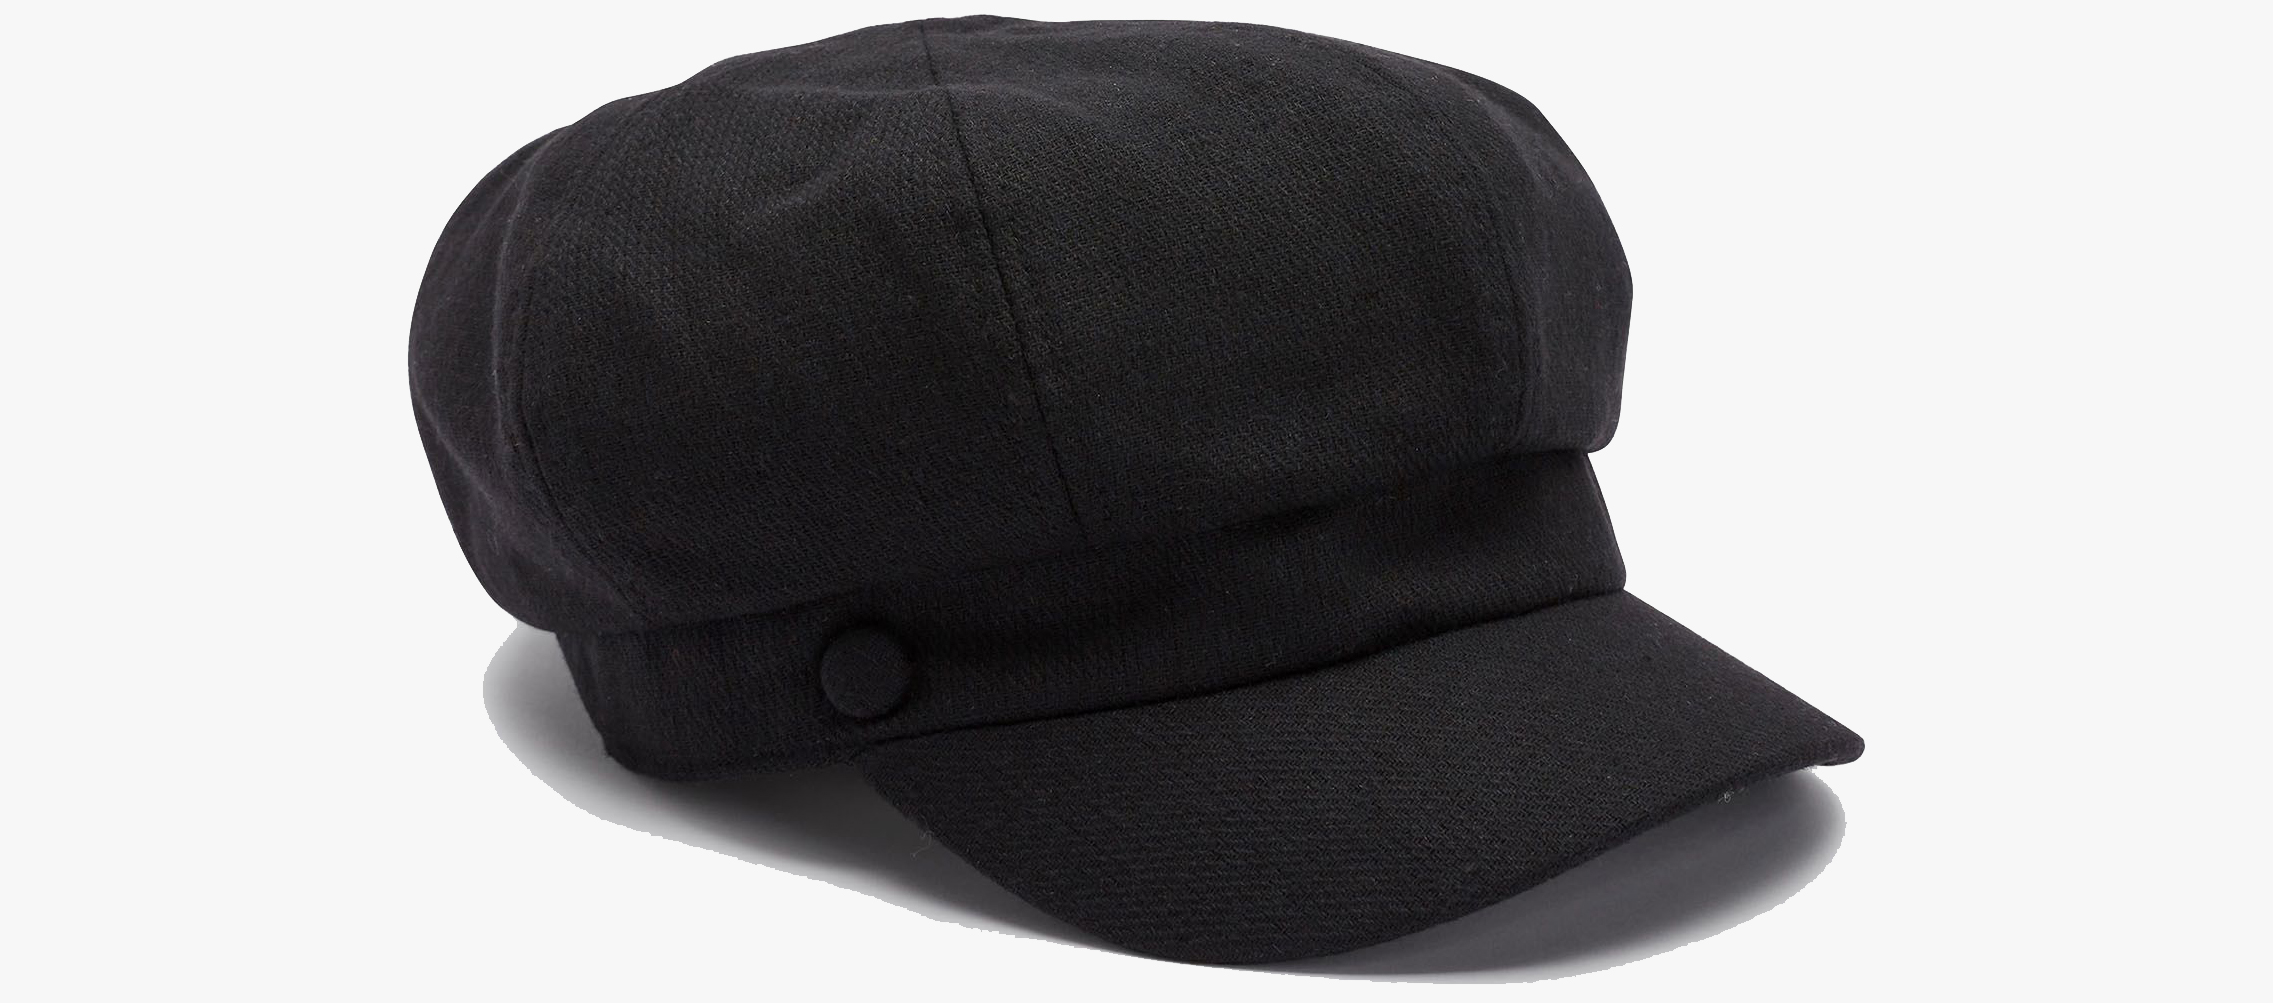 Next Black Baker Boy Hat